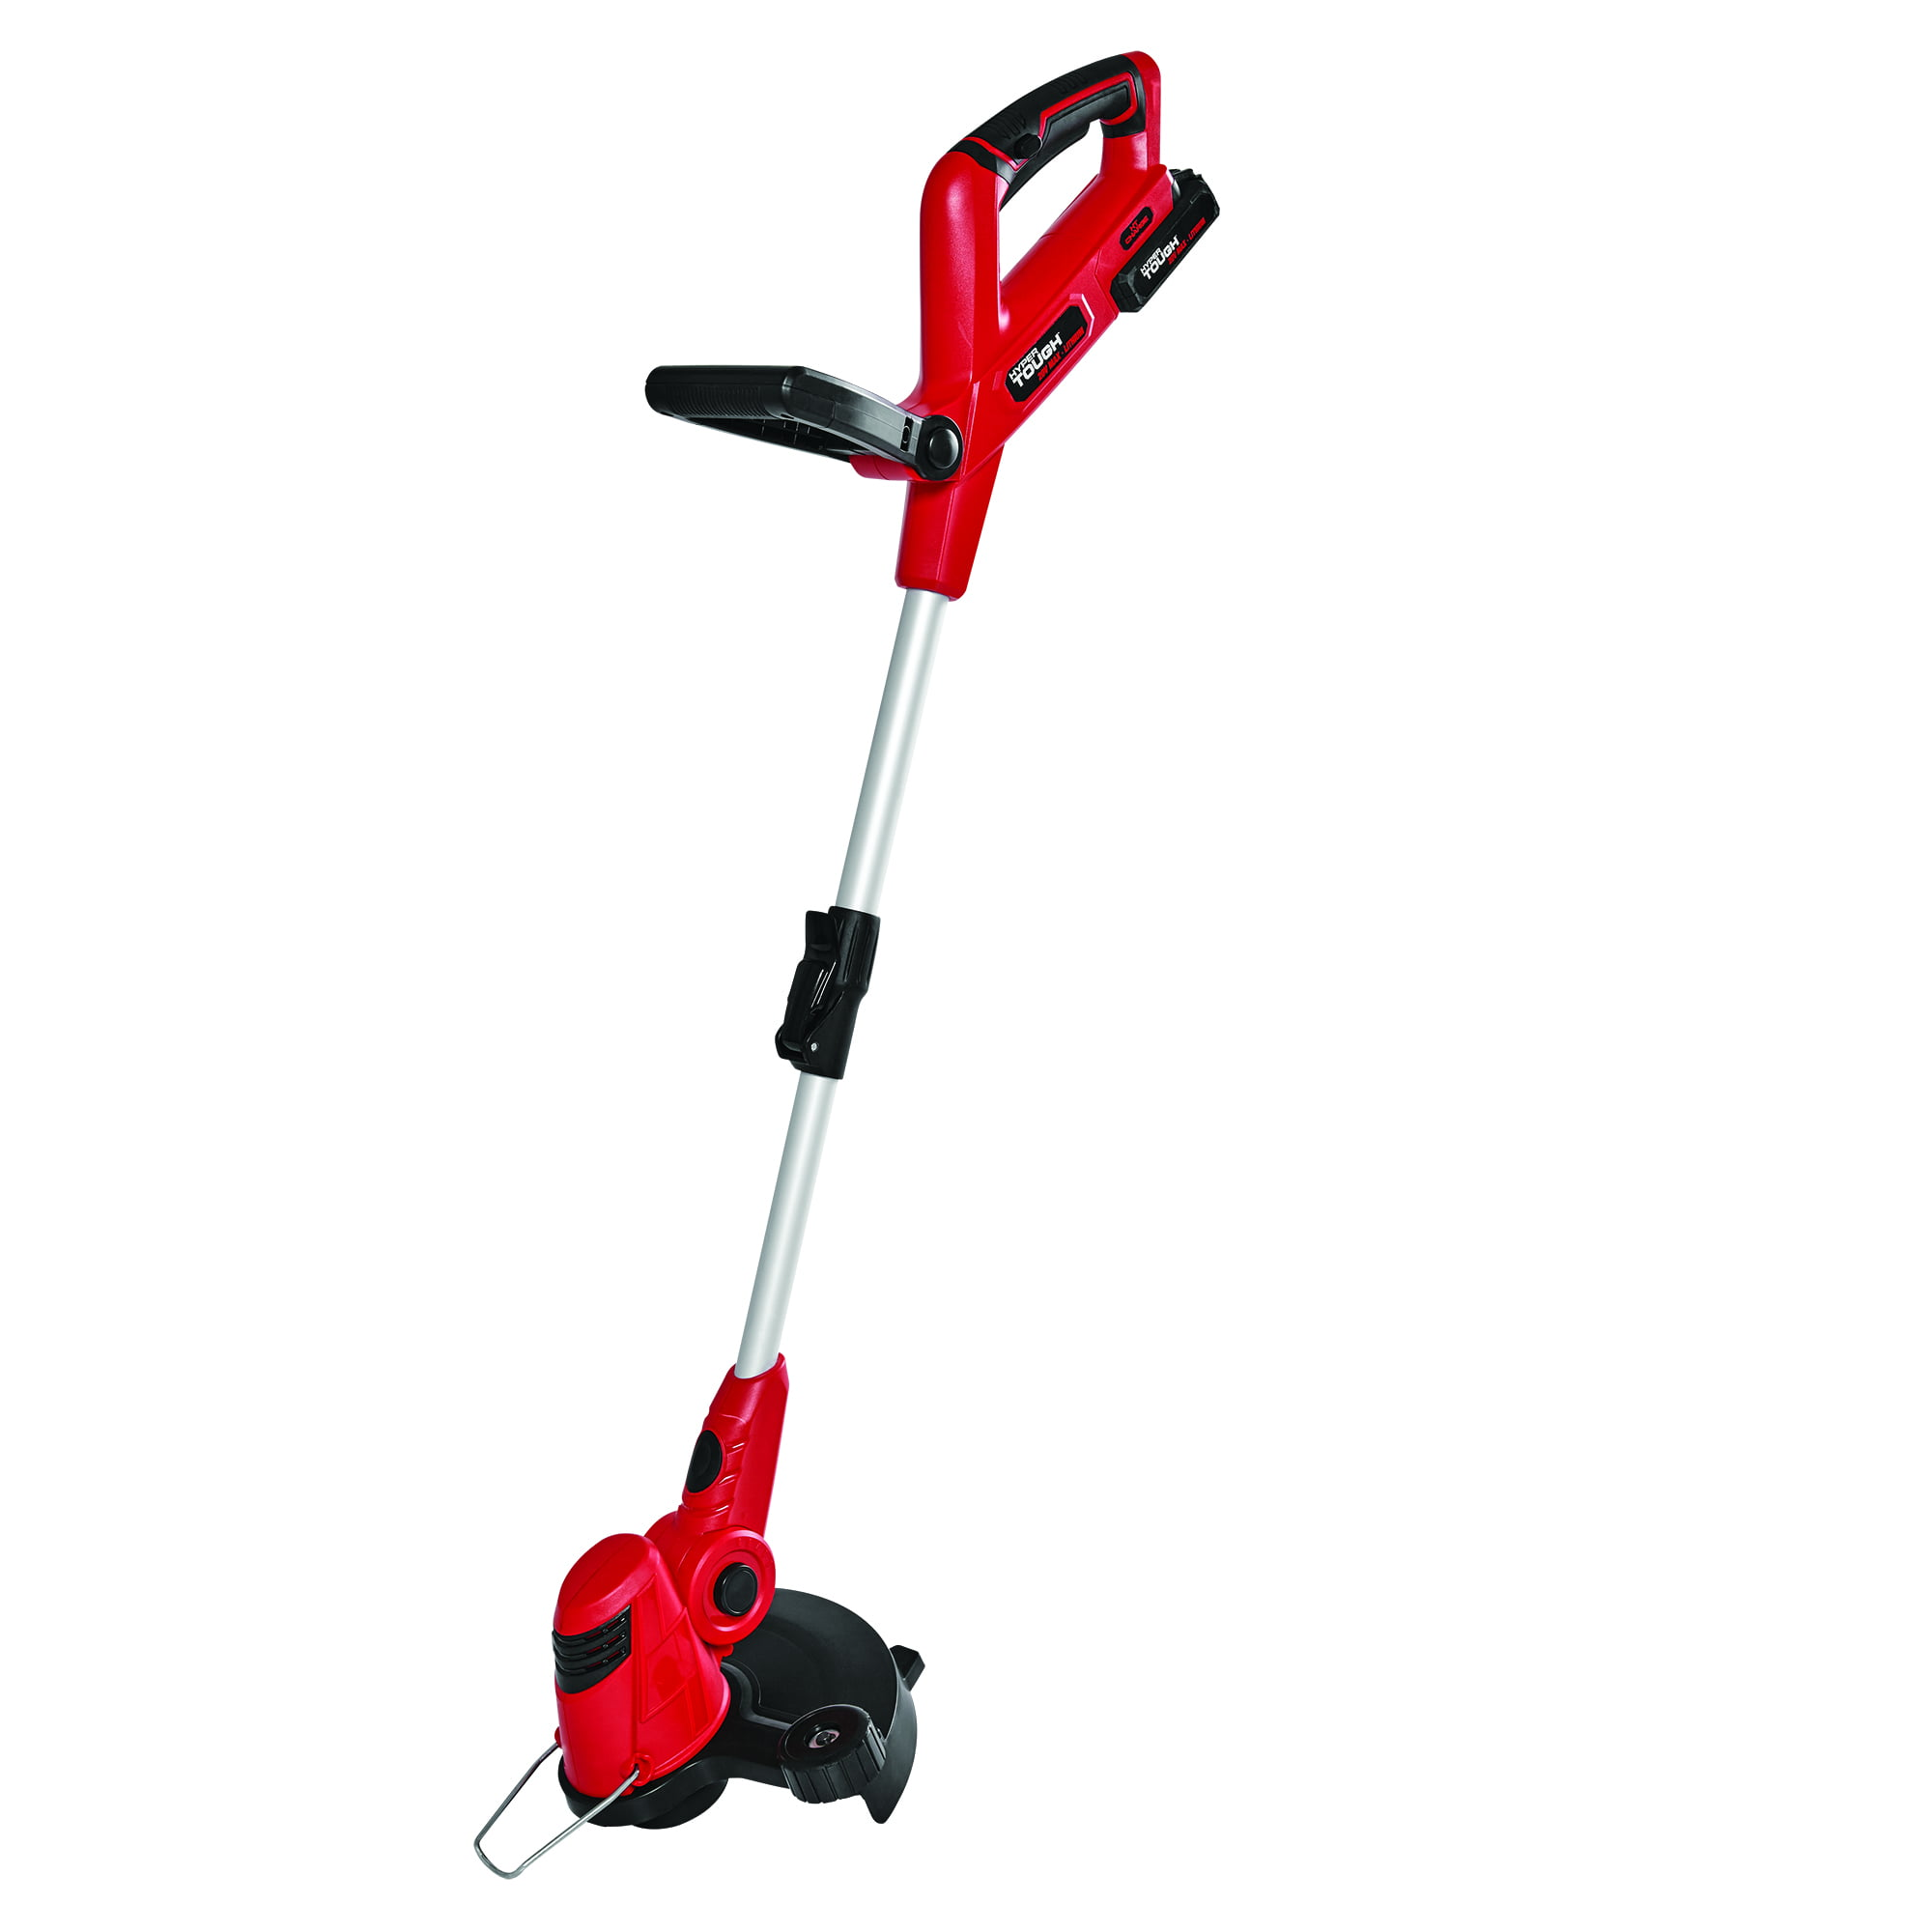 Battery Operated Weed Eater >> Hyper Tough 20v Max Cordless 12 String Trimmer Walmart Com